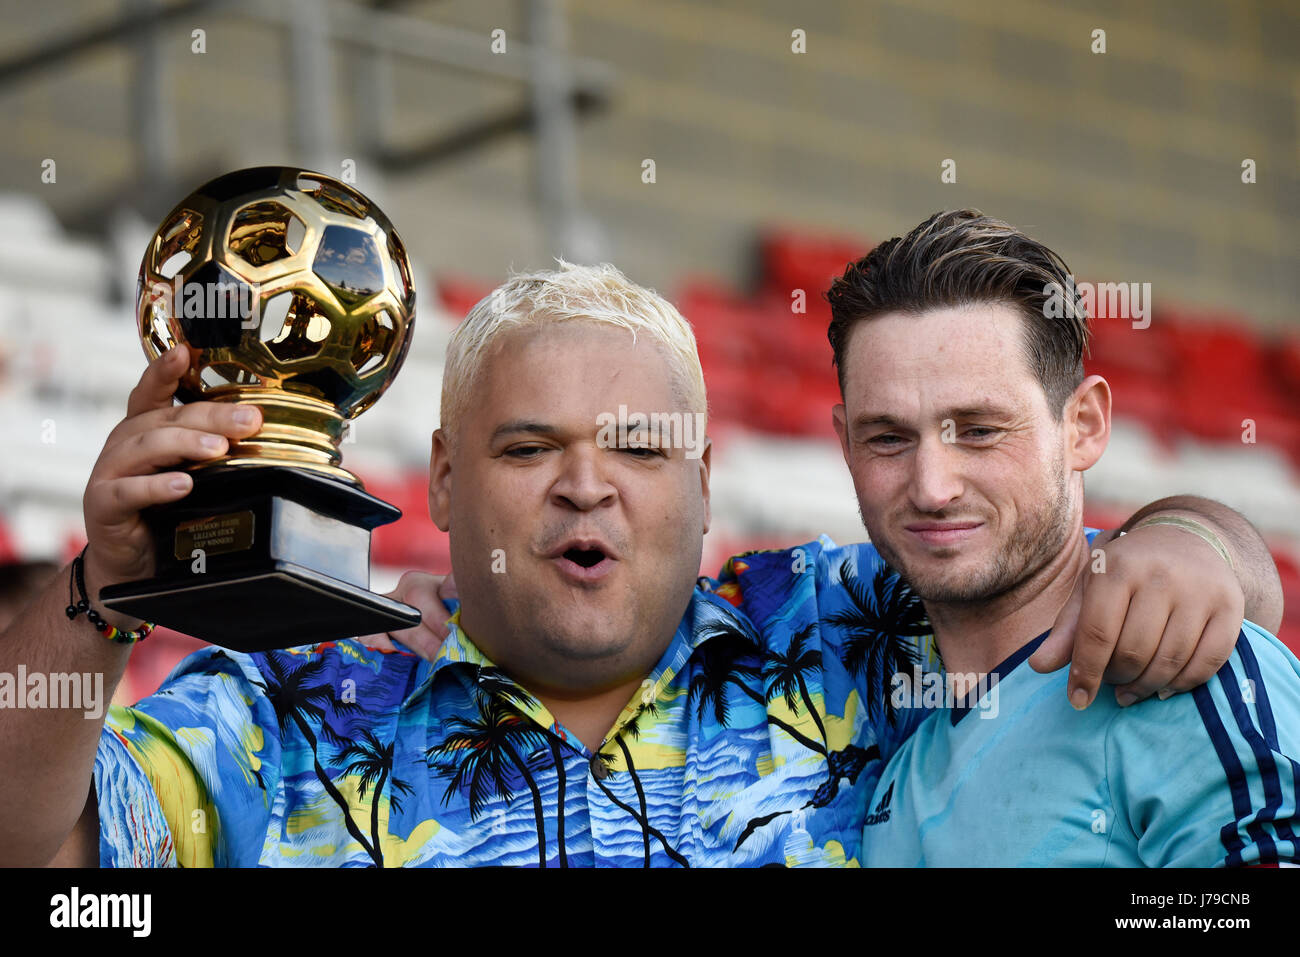 heavy d real name colin newell storage hunters big brother and stock photo alamy https www alamy com stock photo heavy d real name colin newell storage hunters big brother and danny 142193111 html